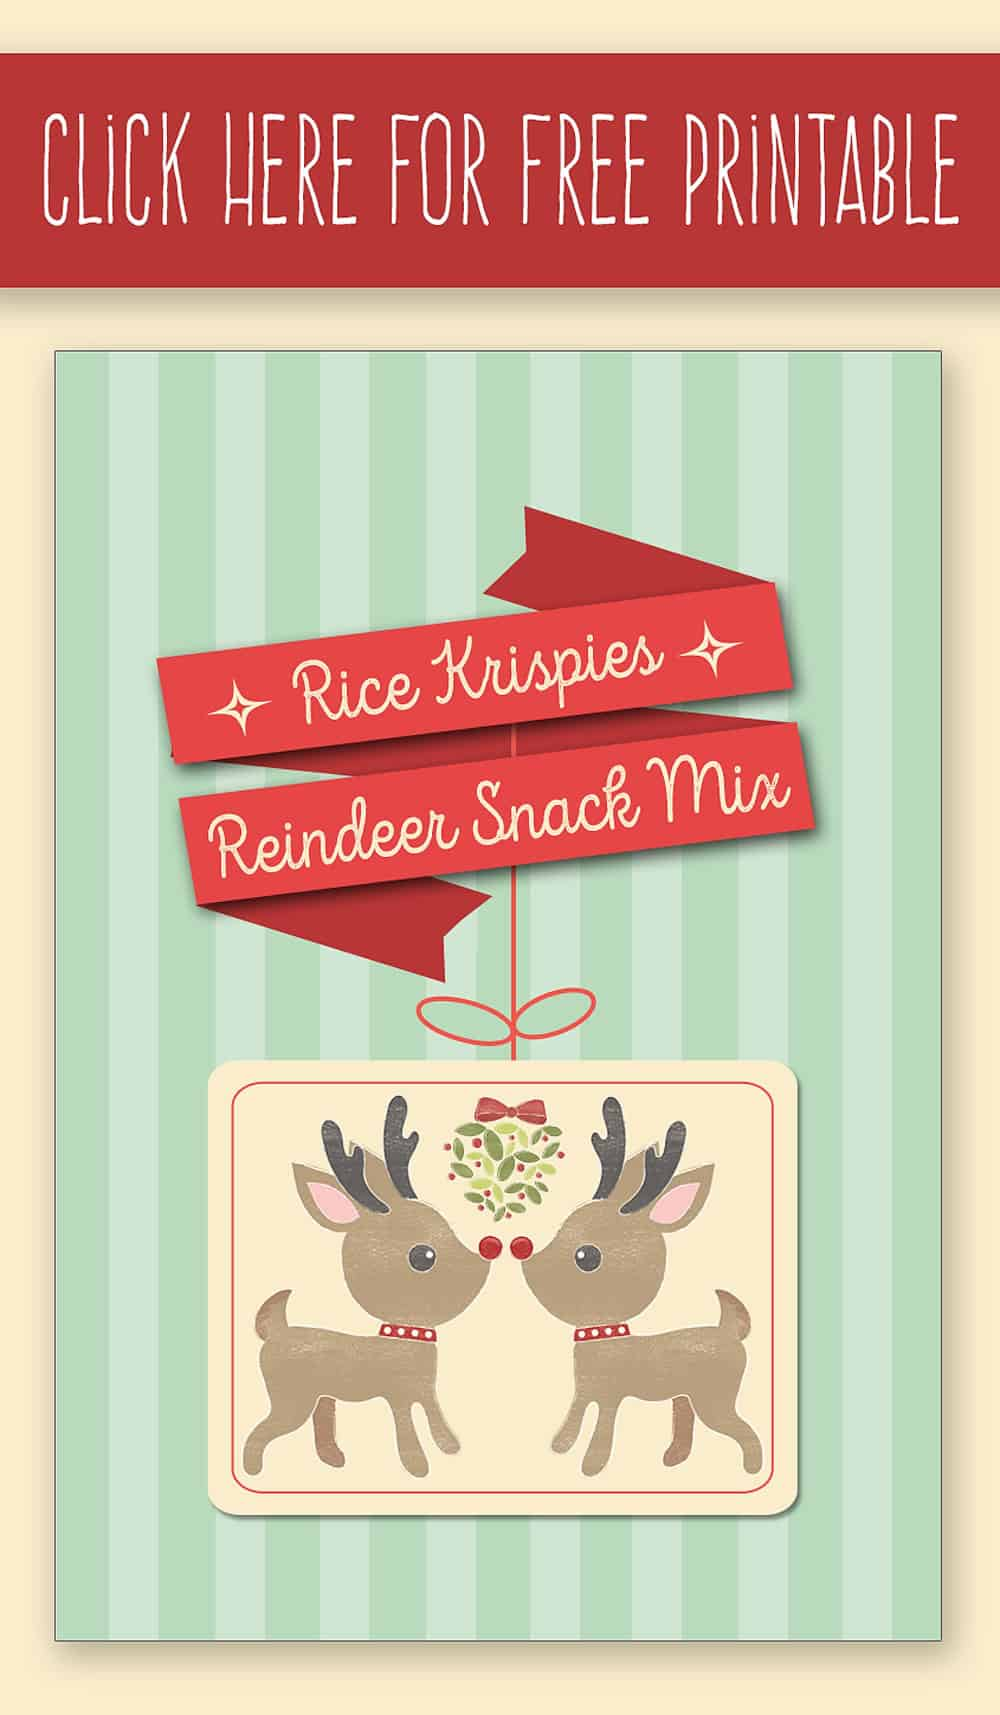 Rice Krispies Reindeer Snack Mix with FREE Printable